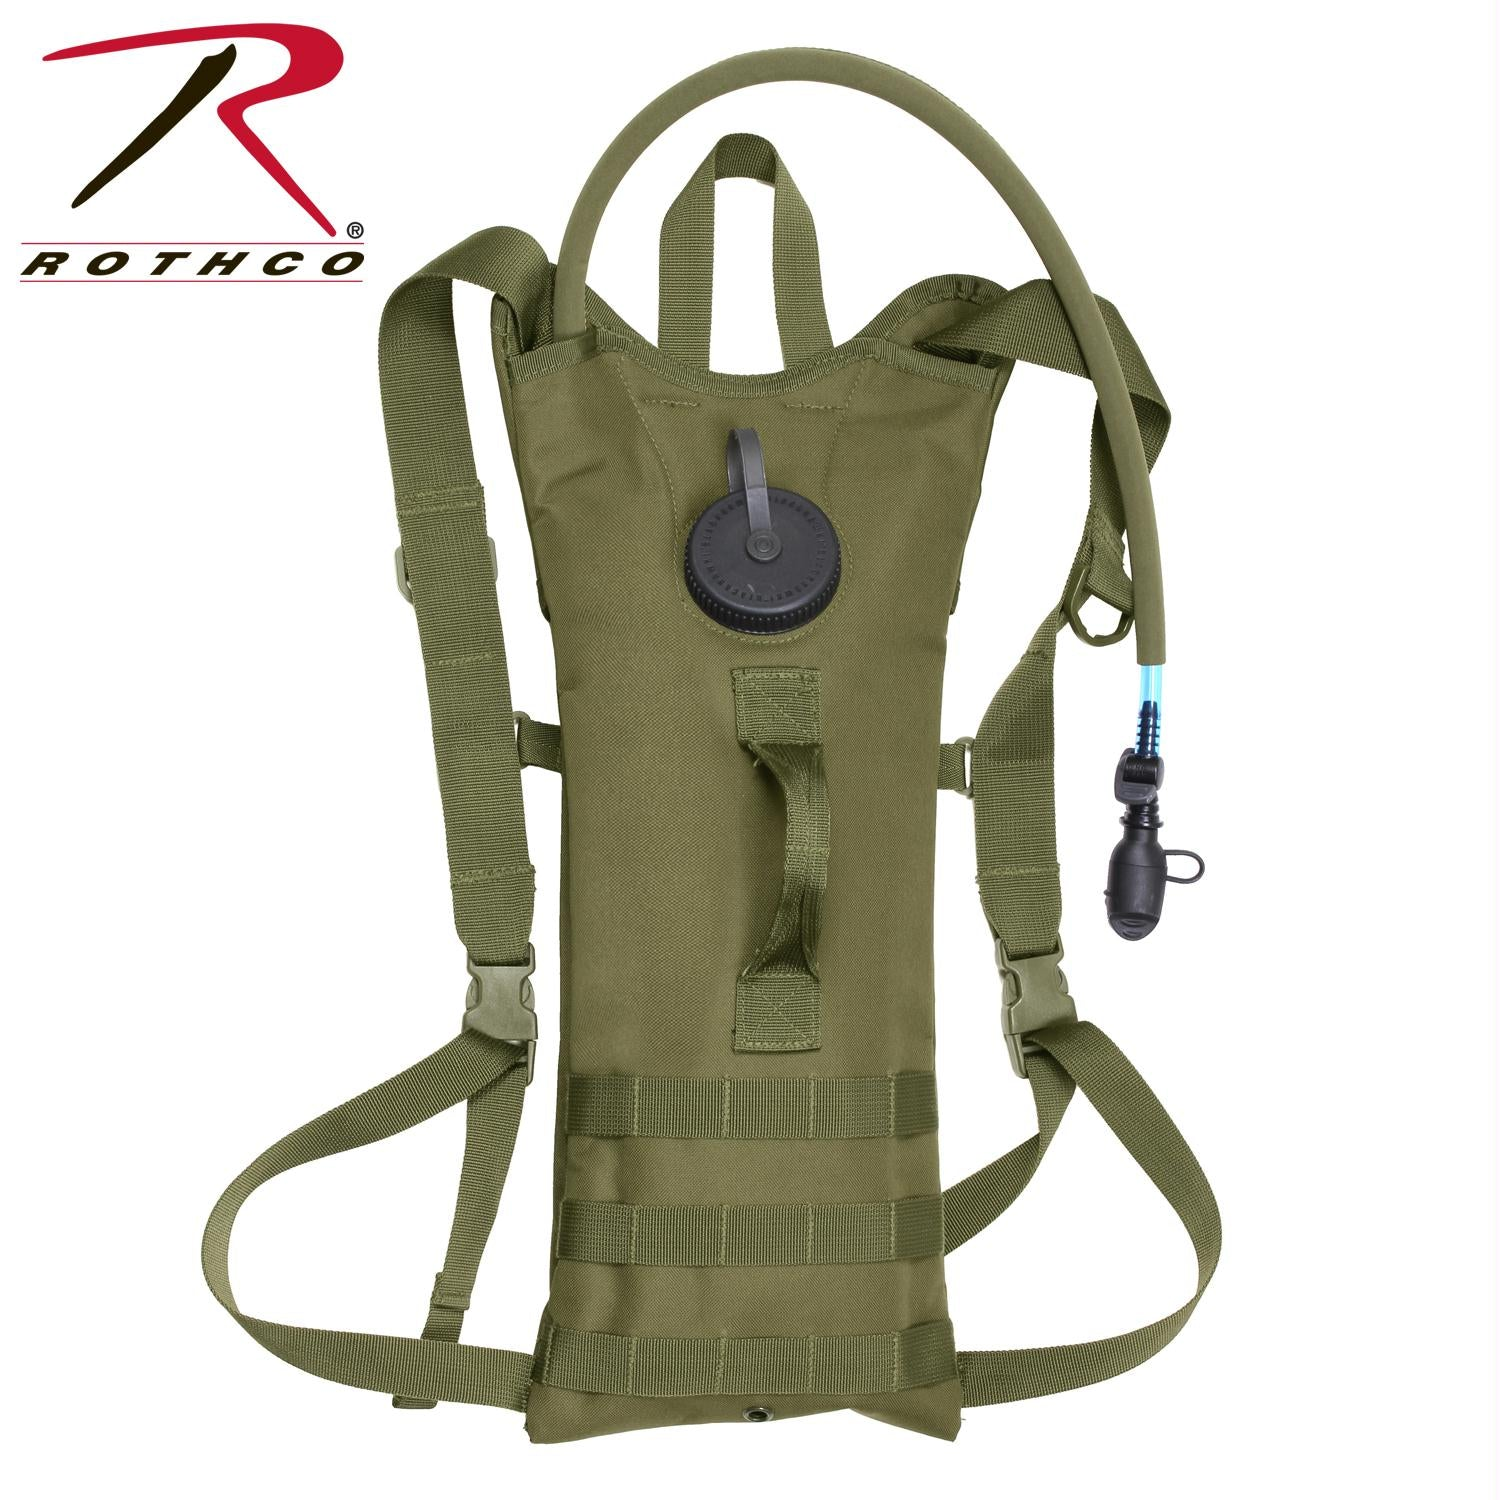 Rothco MOLLE 3 Liter Backstrap Hydration System - Olive Drab